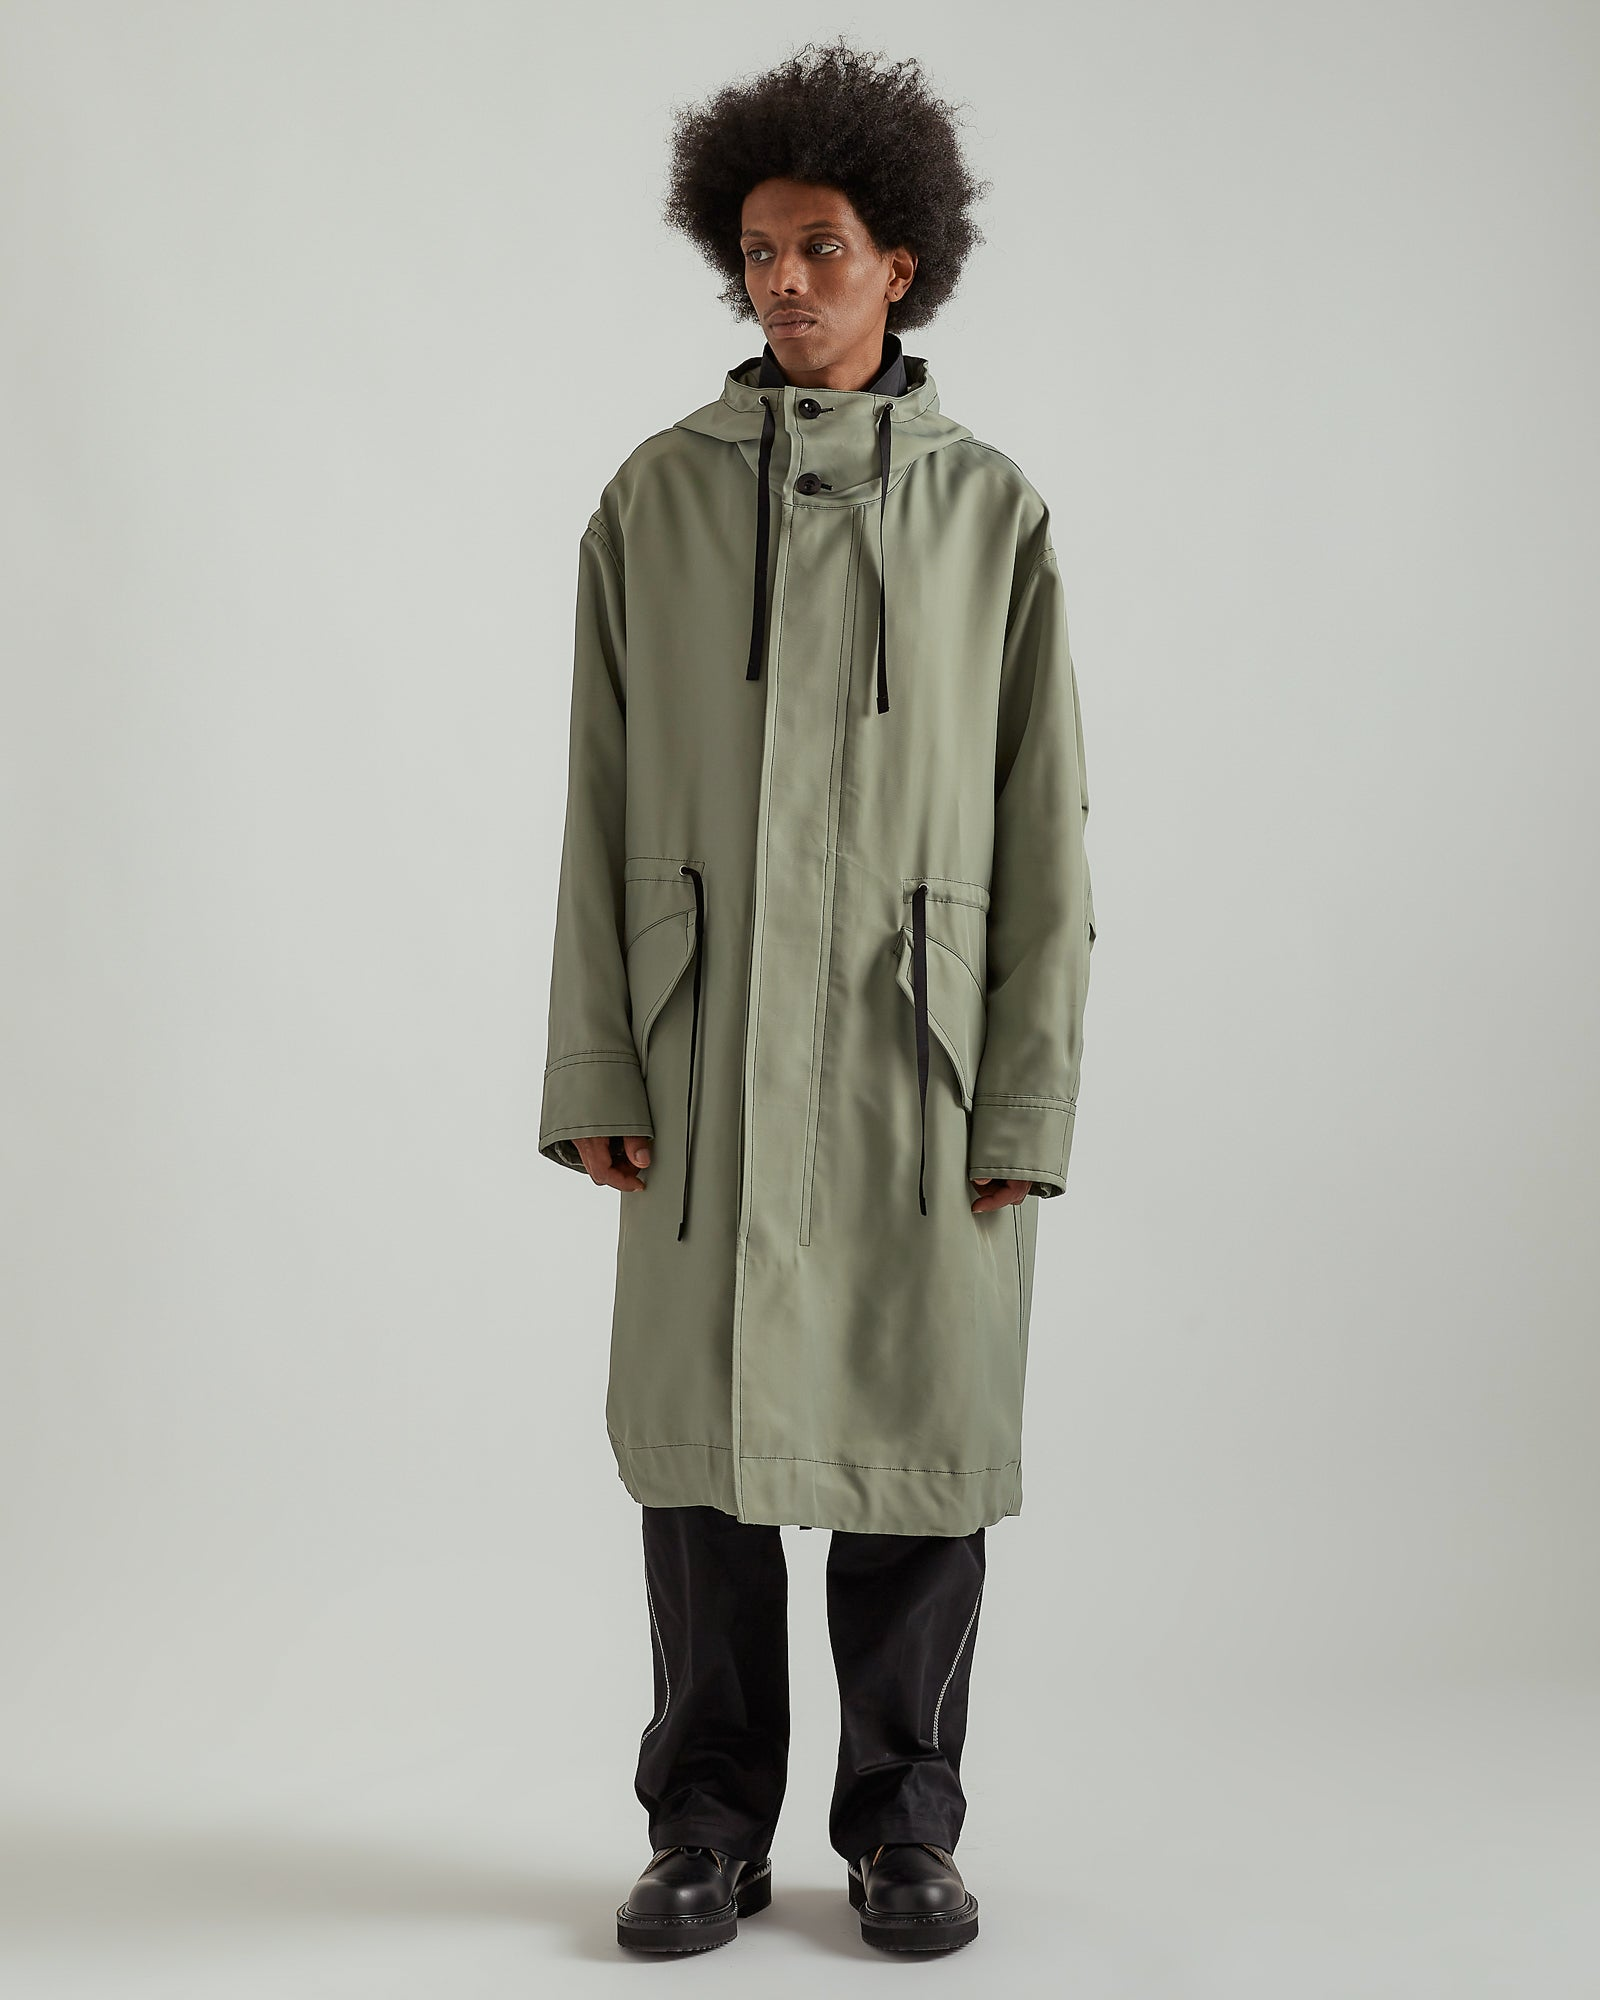 Frieze Parka in Cadet Green